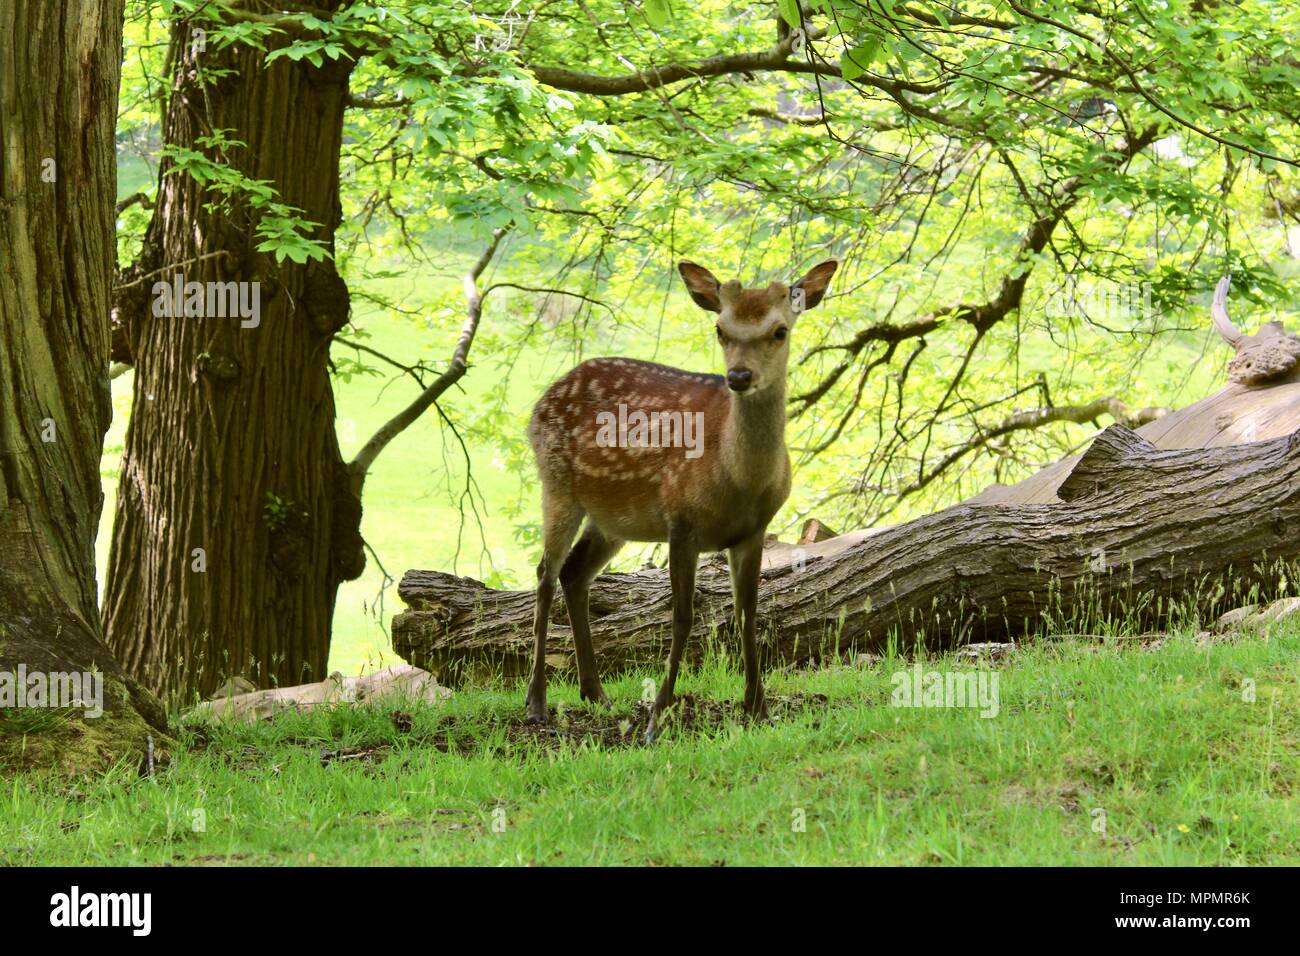 A deer standing in the woods - Stock Image